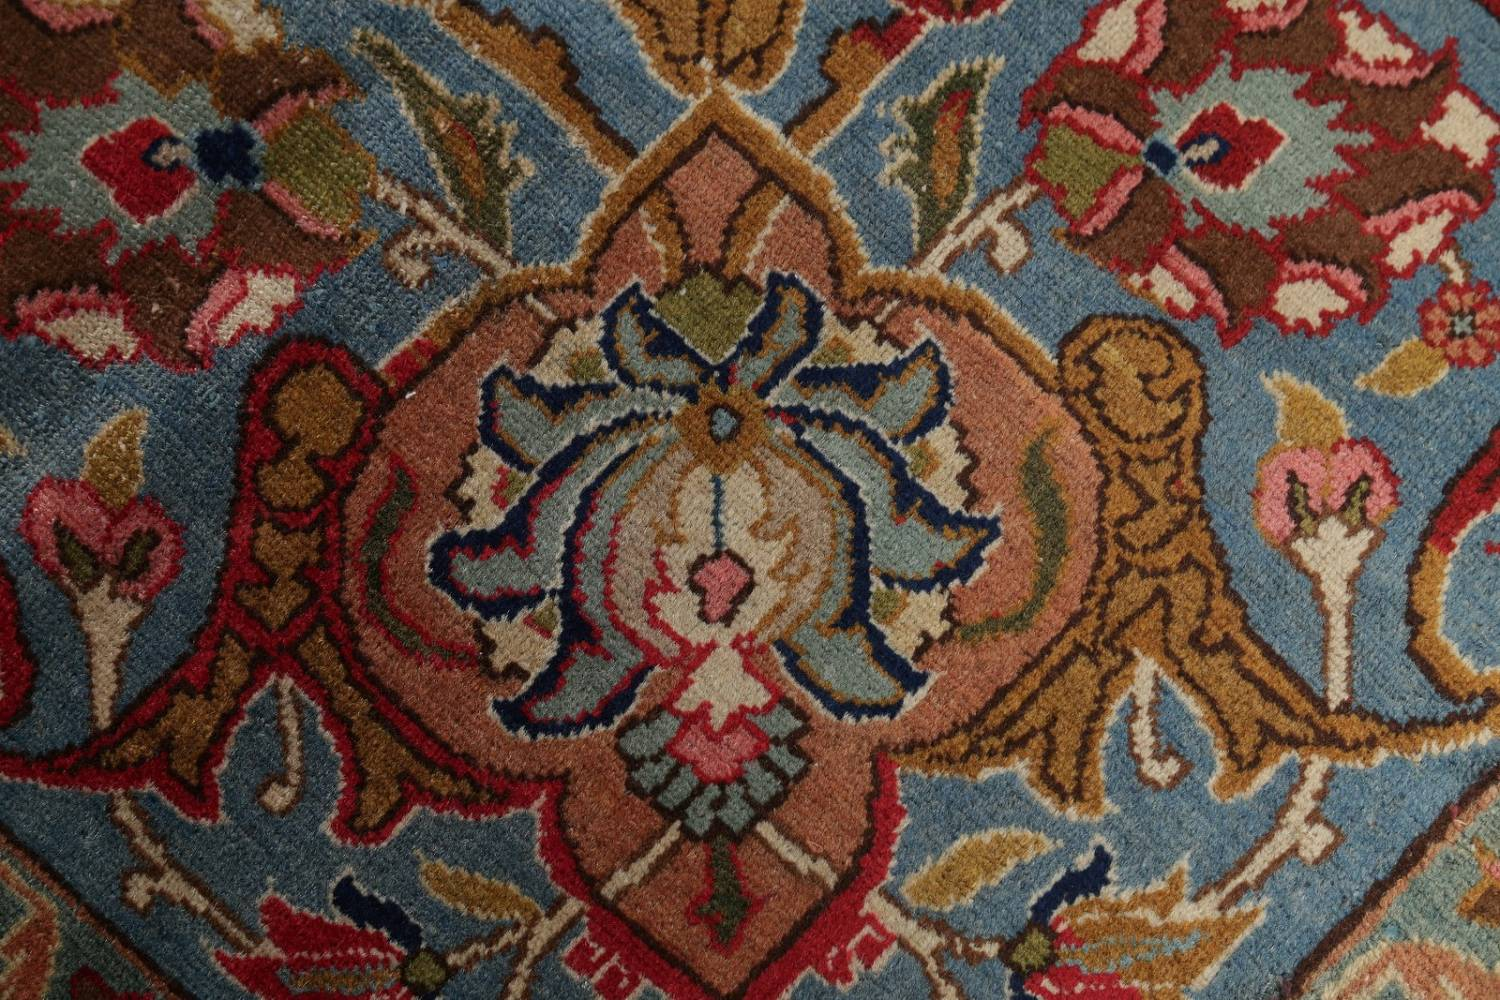 Antique Vegetable Dye Tabriz Persian Hand-Knotted Area Rug Wool 10x13 image 9